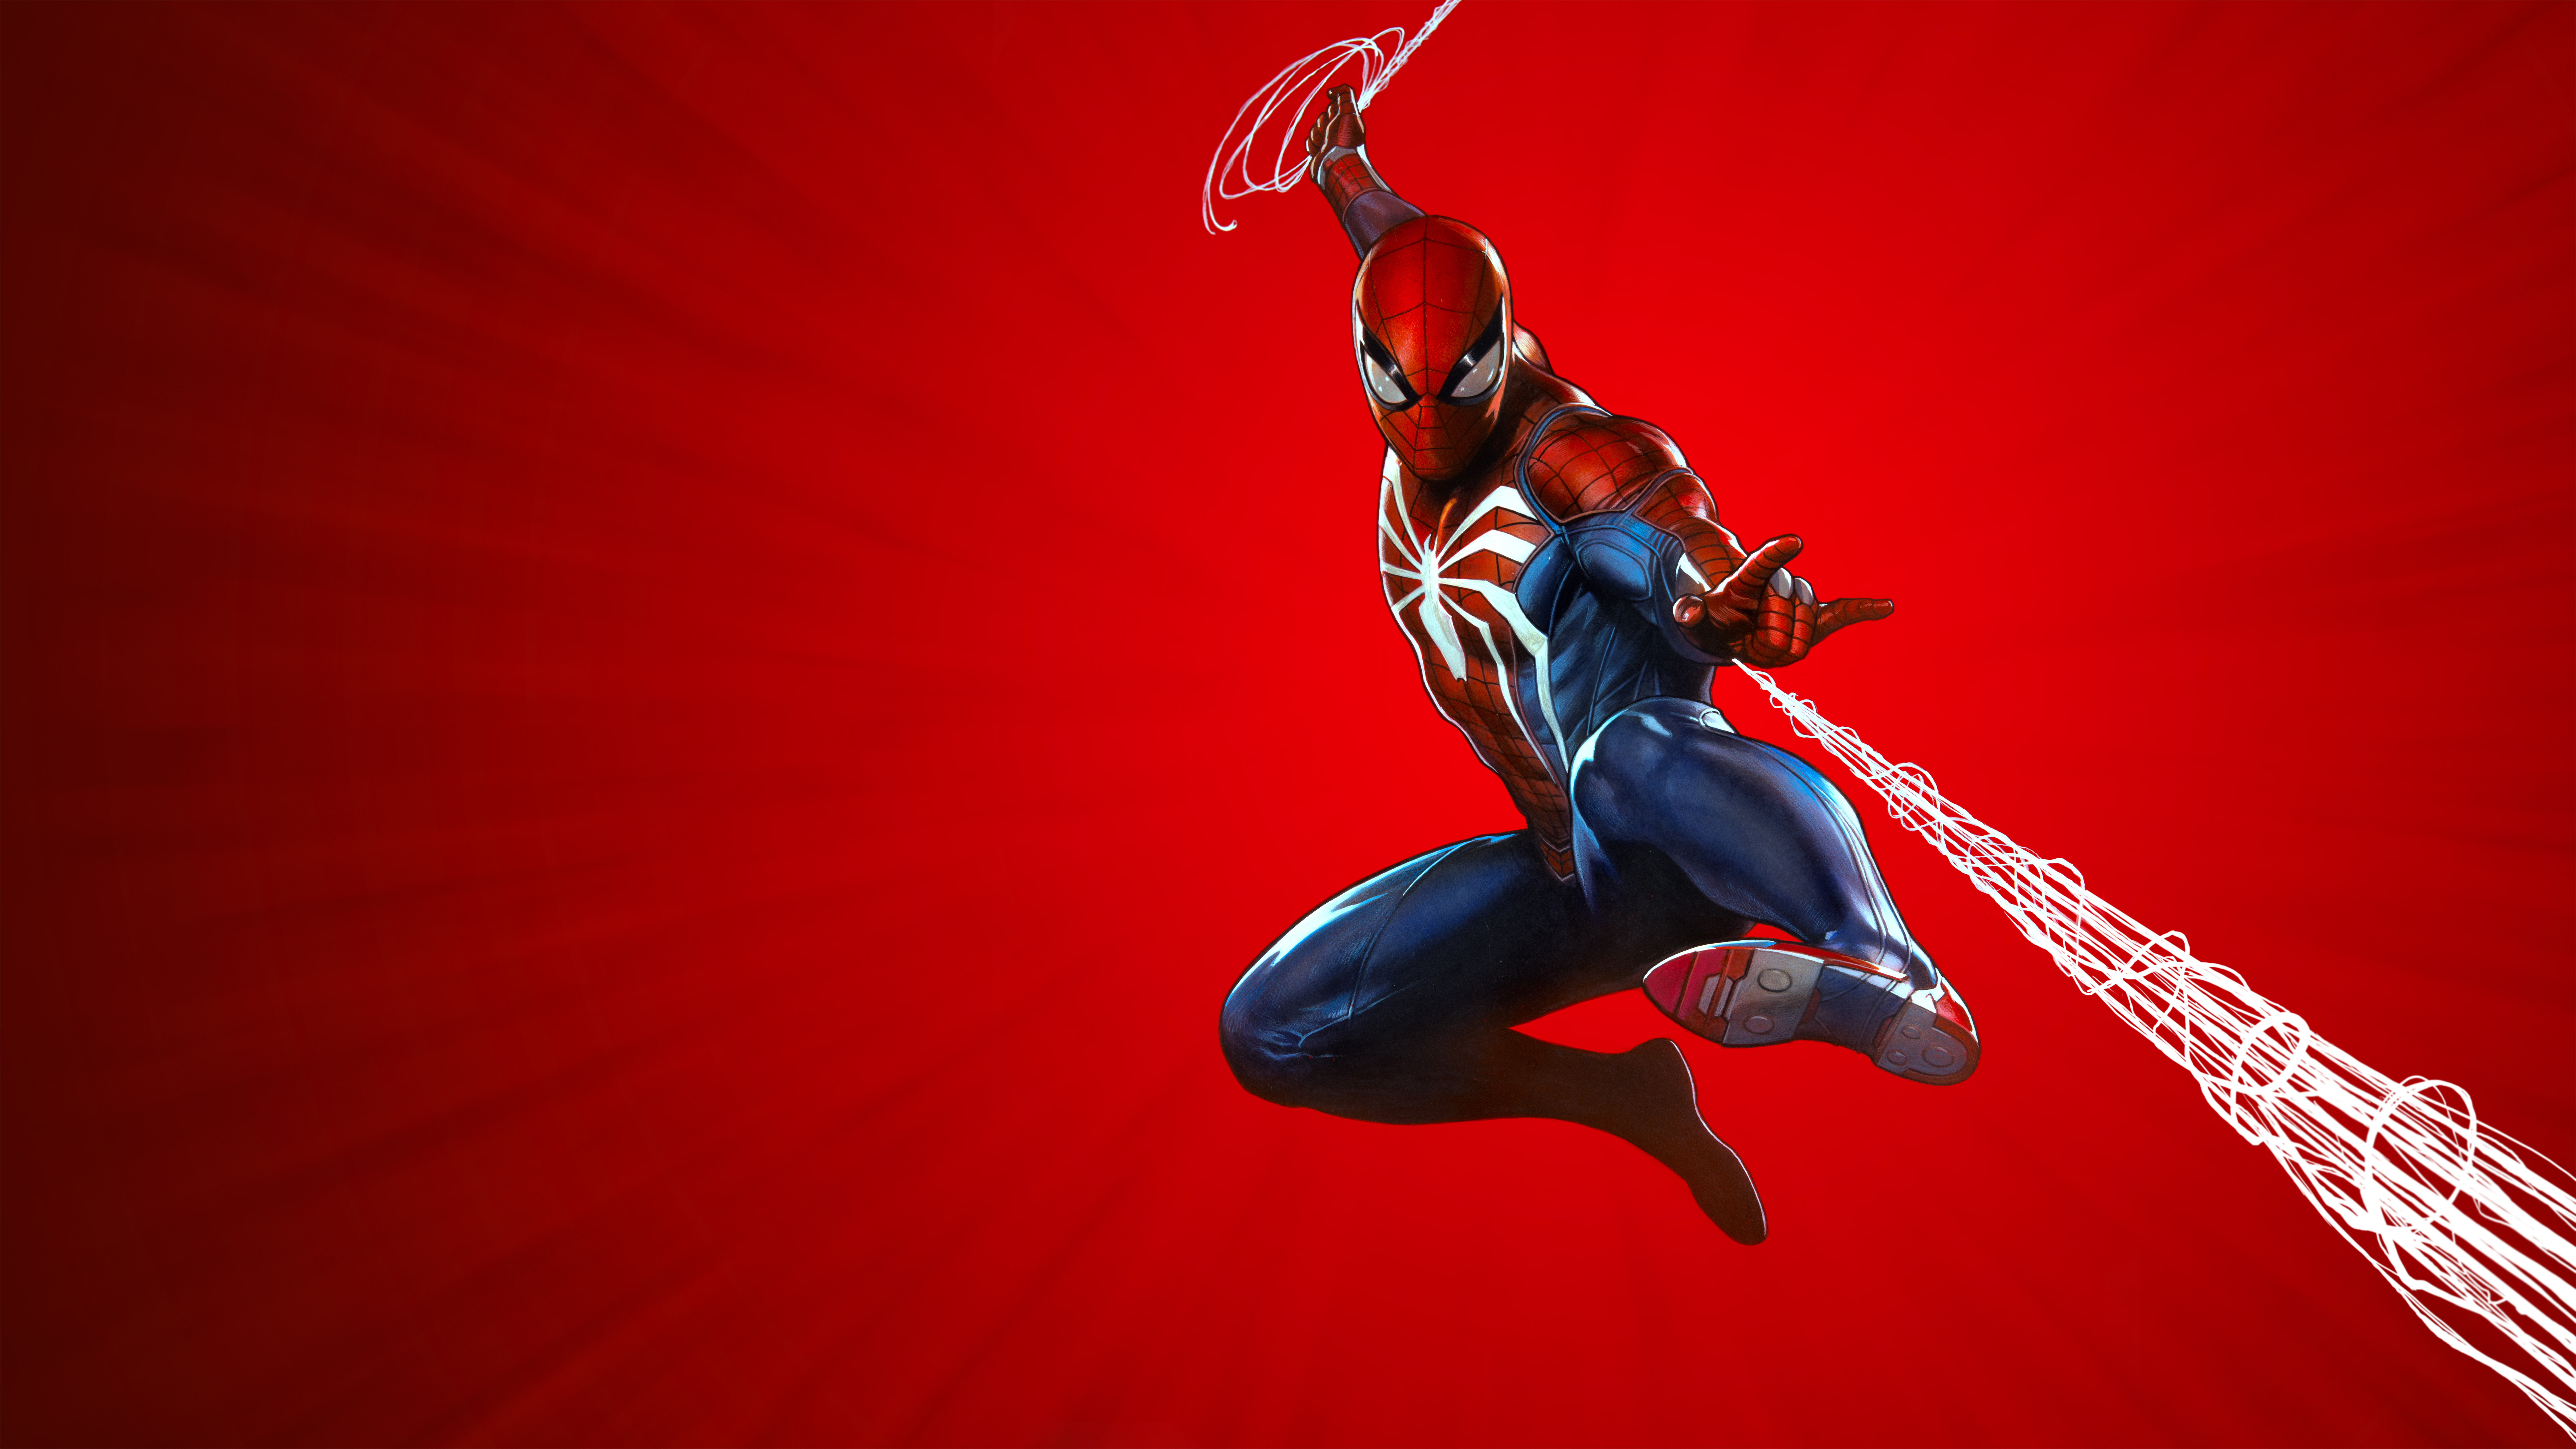 Image] Preview of the Spider-Man pre-order PS4 theme : PS4